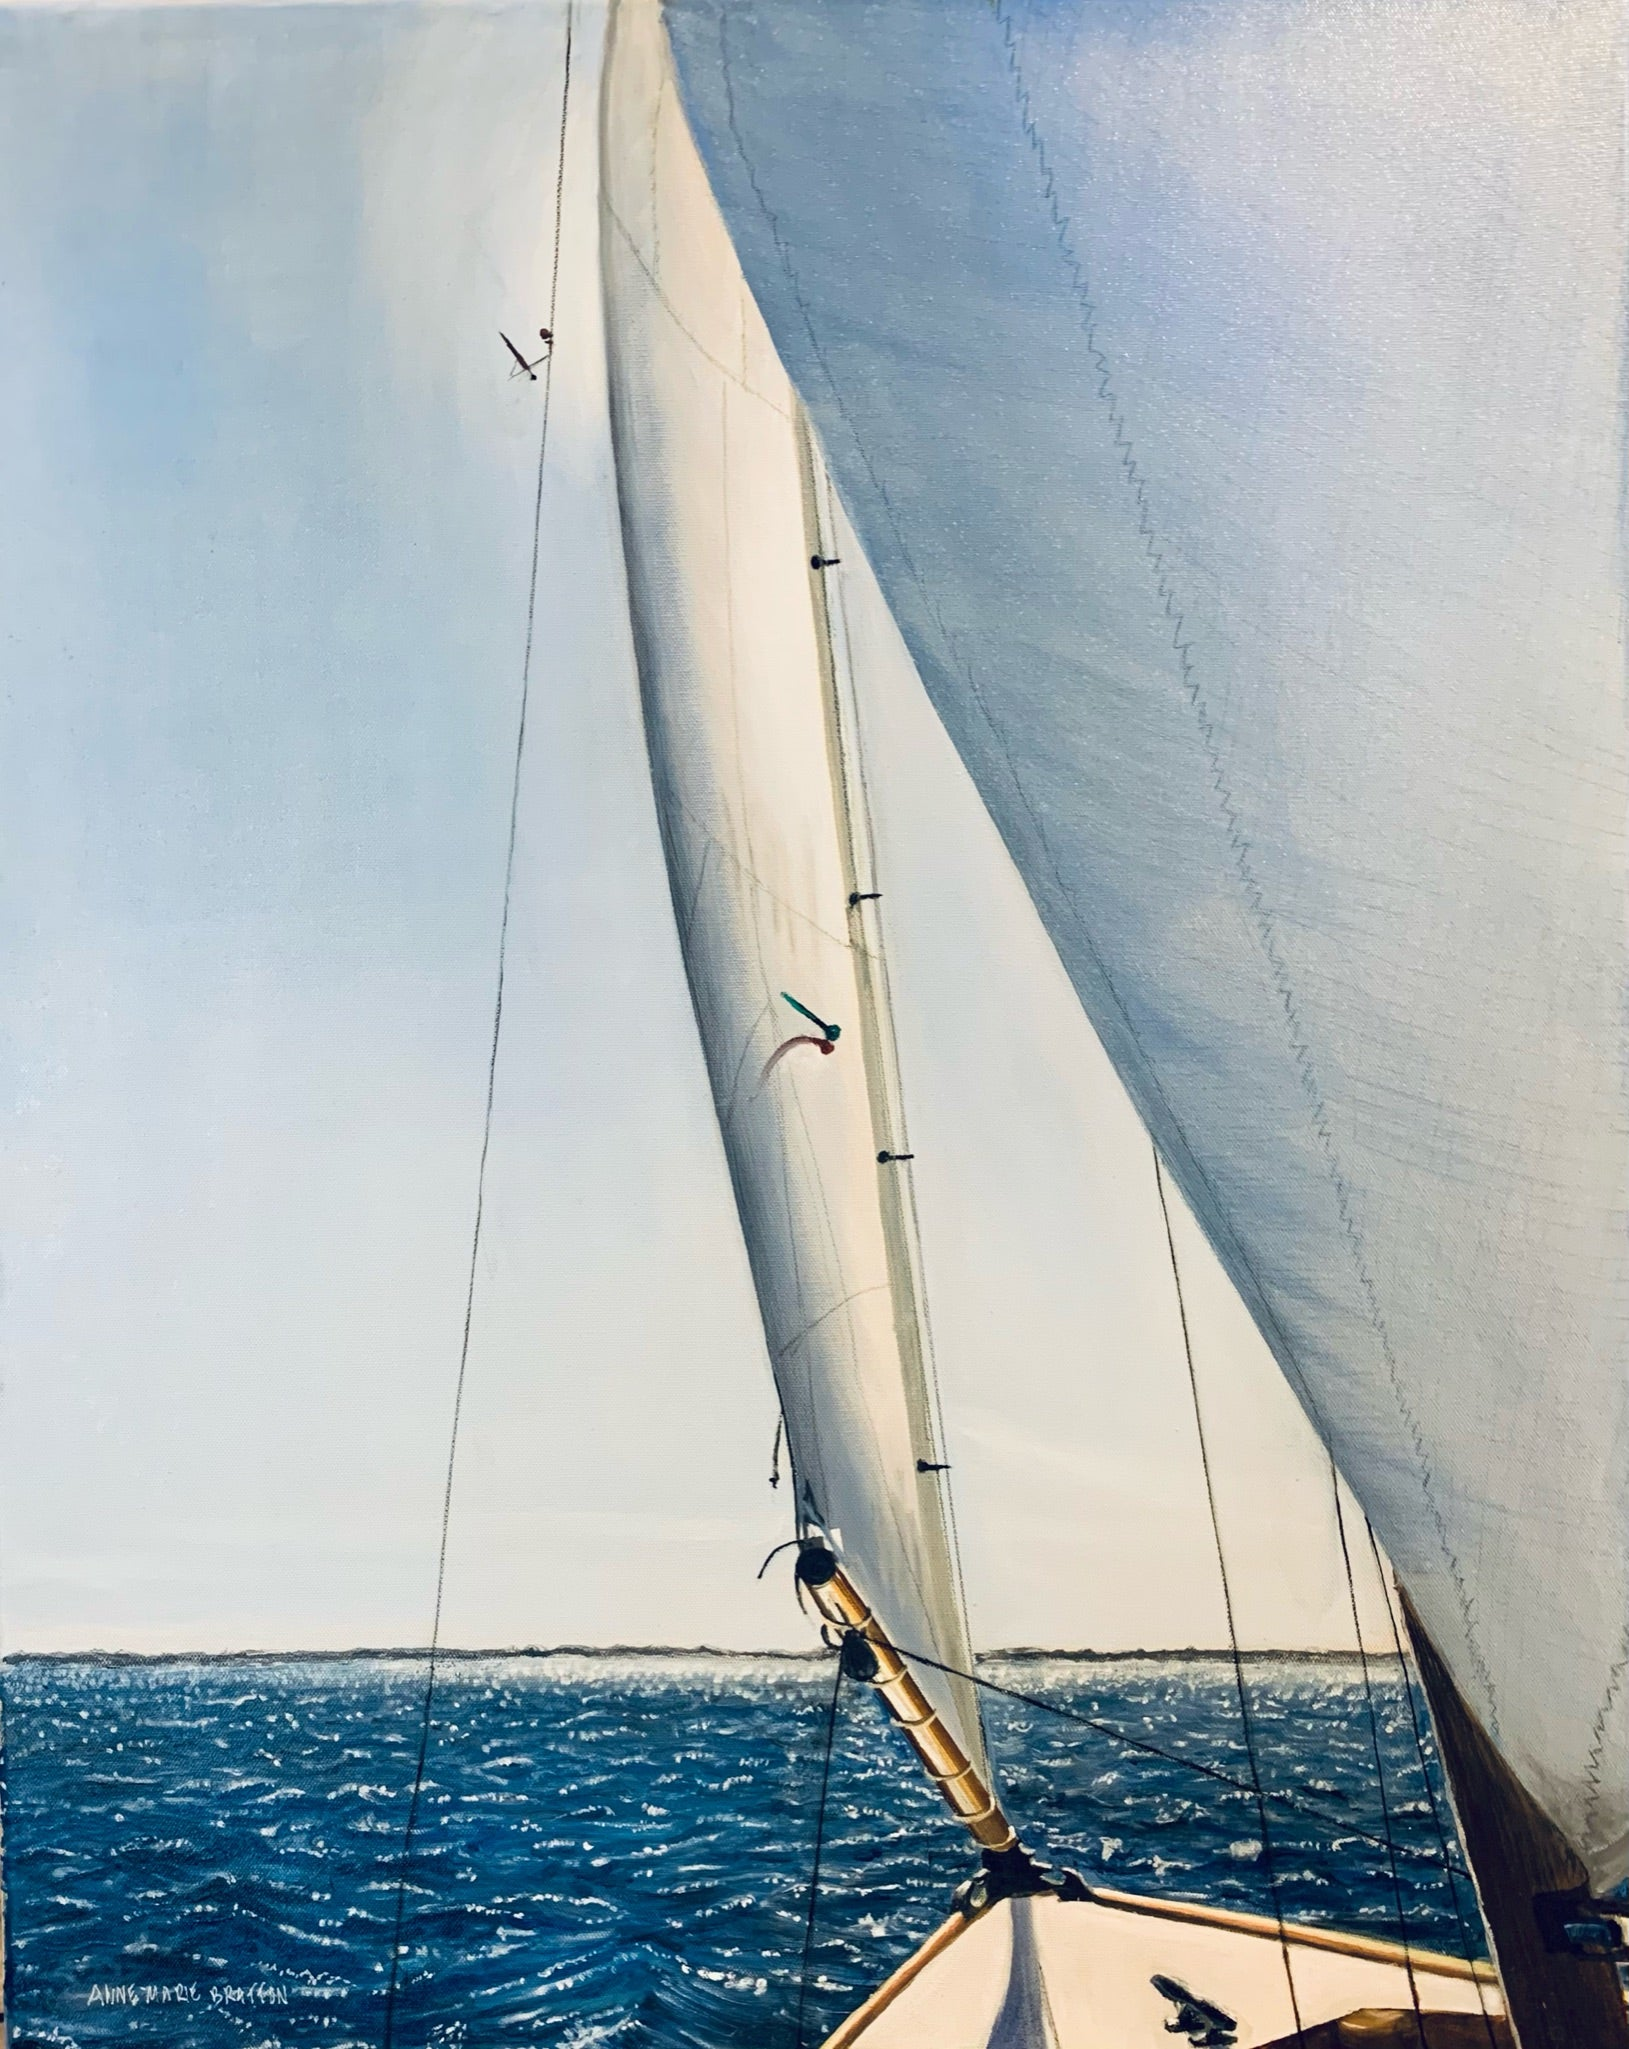 Sailing on Sun Sparkled Waters